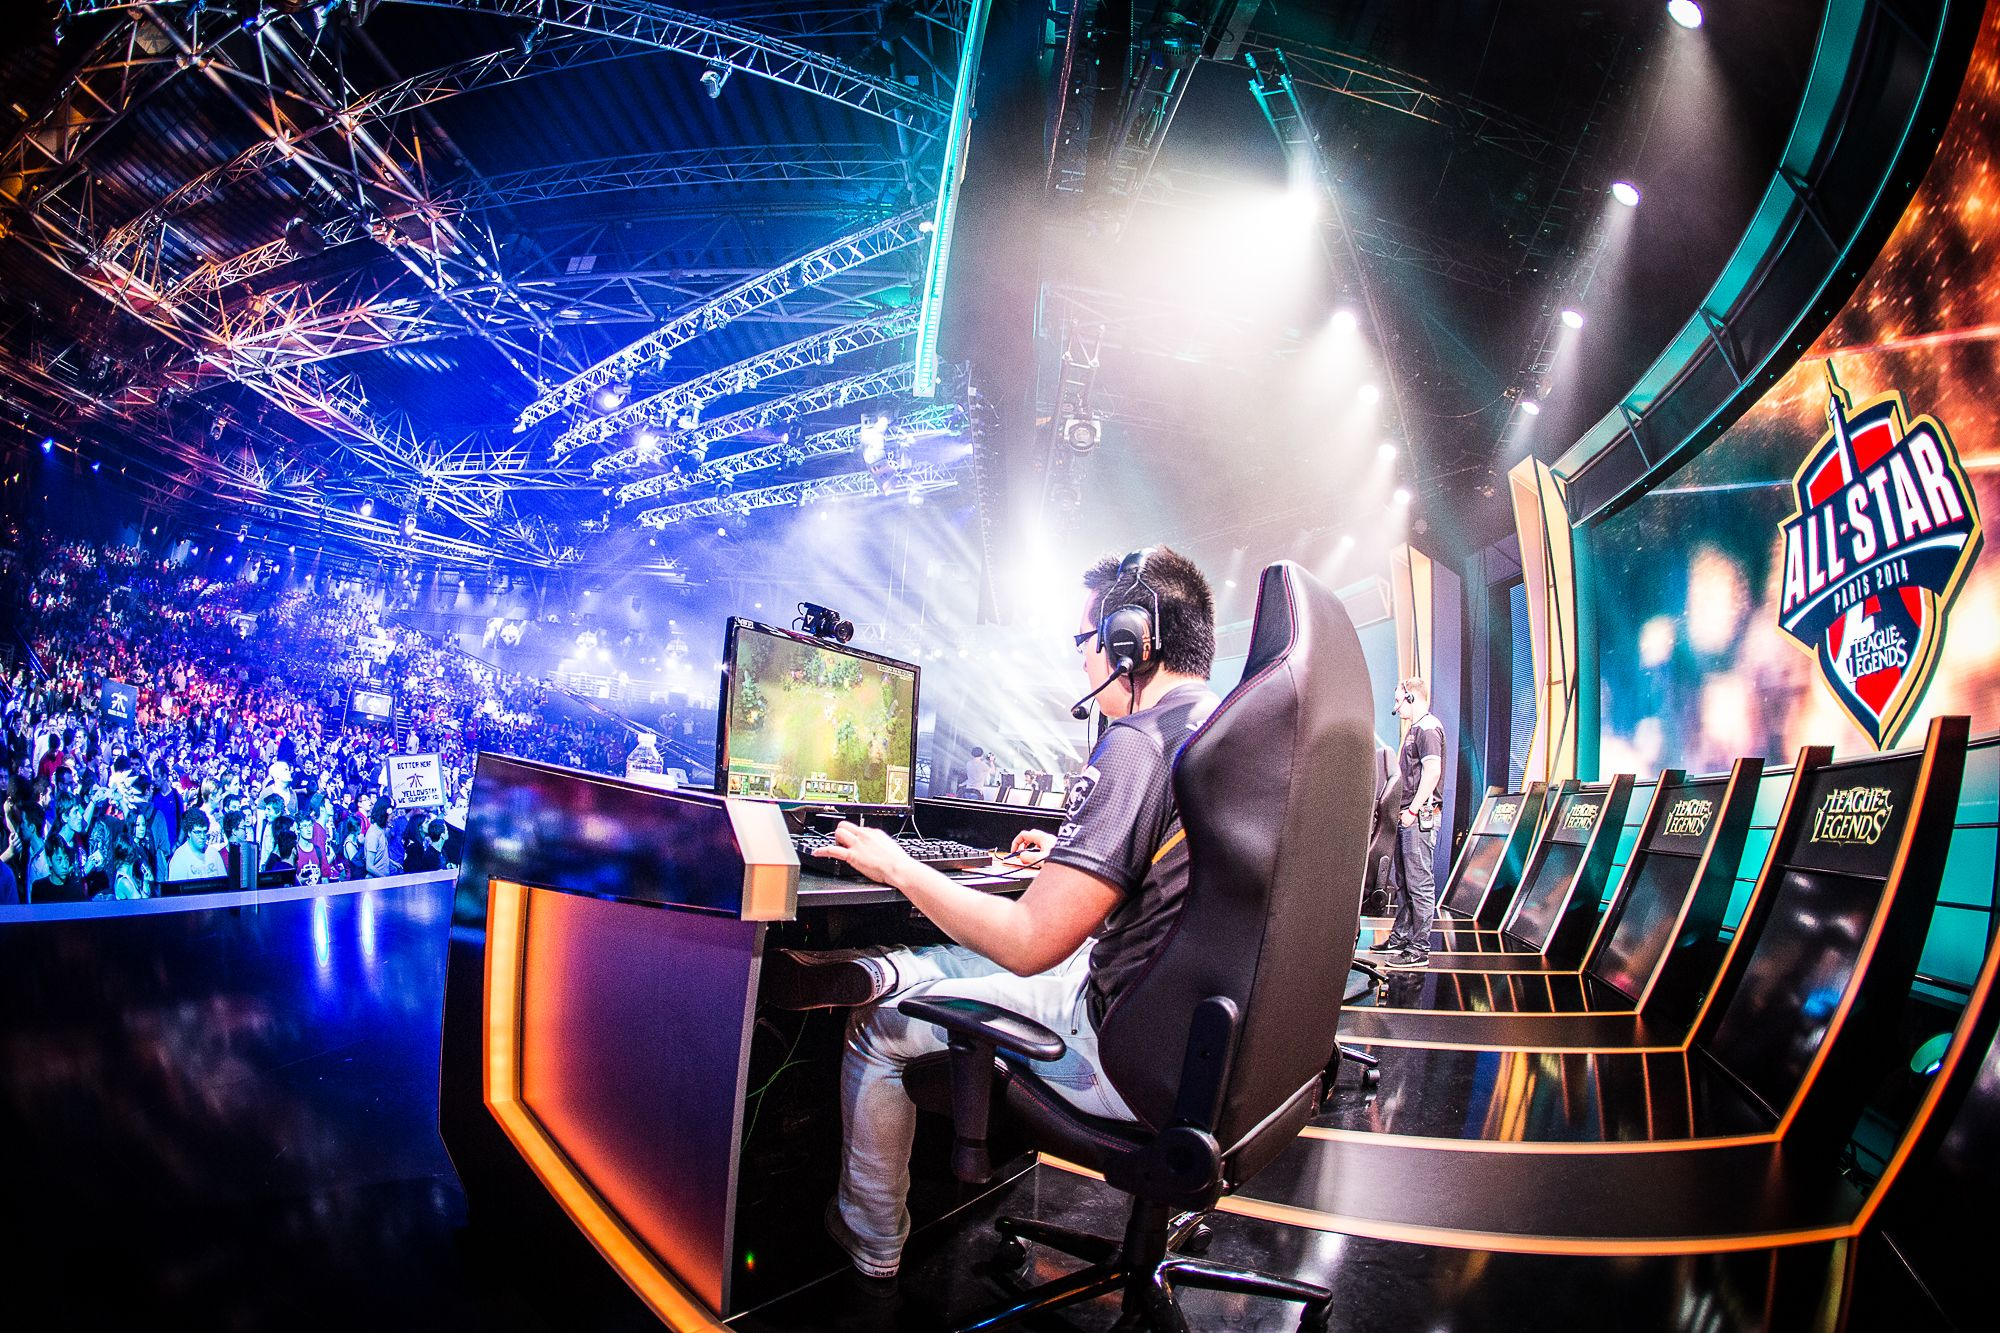 Yahoo: Video game fans targetted in eSports foray